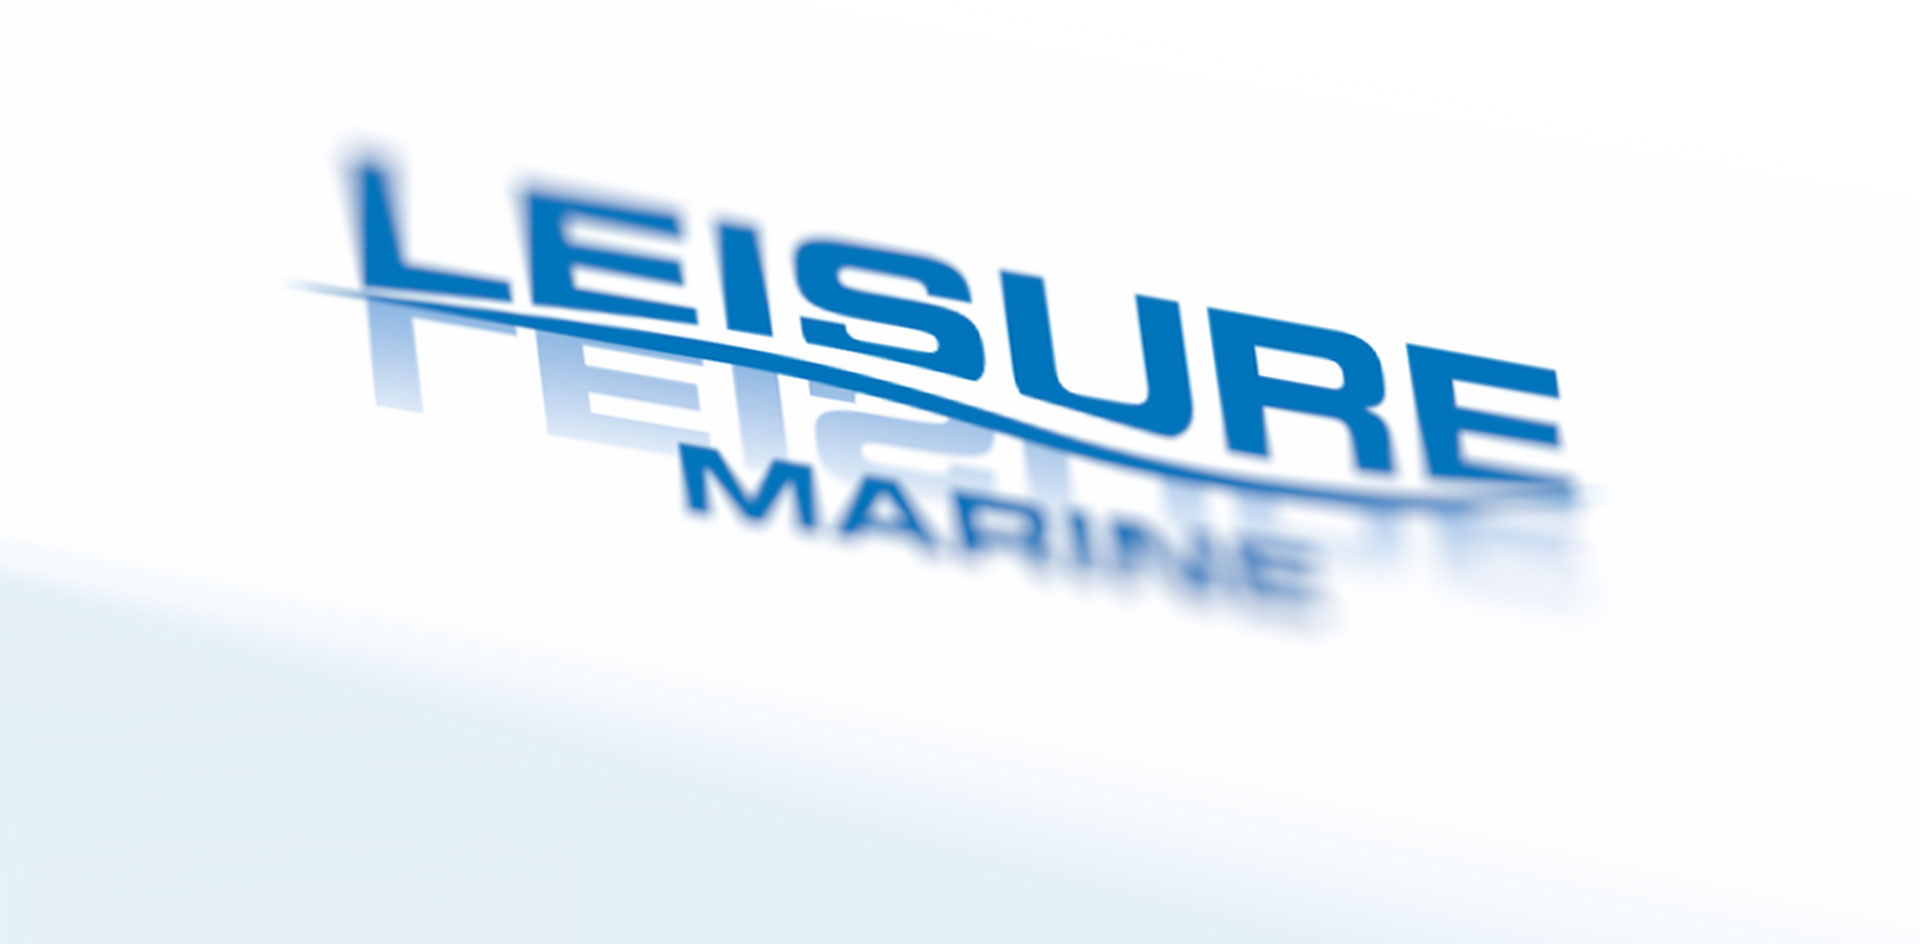 Leisuremarine logo design by Black Rooster Studios.